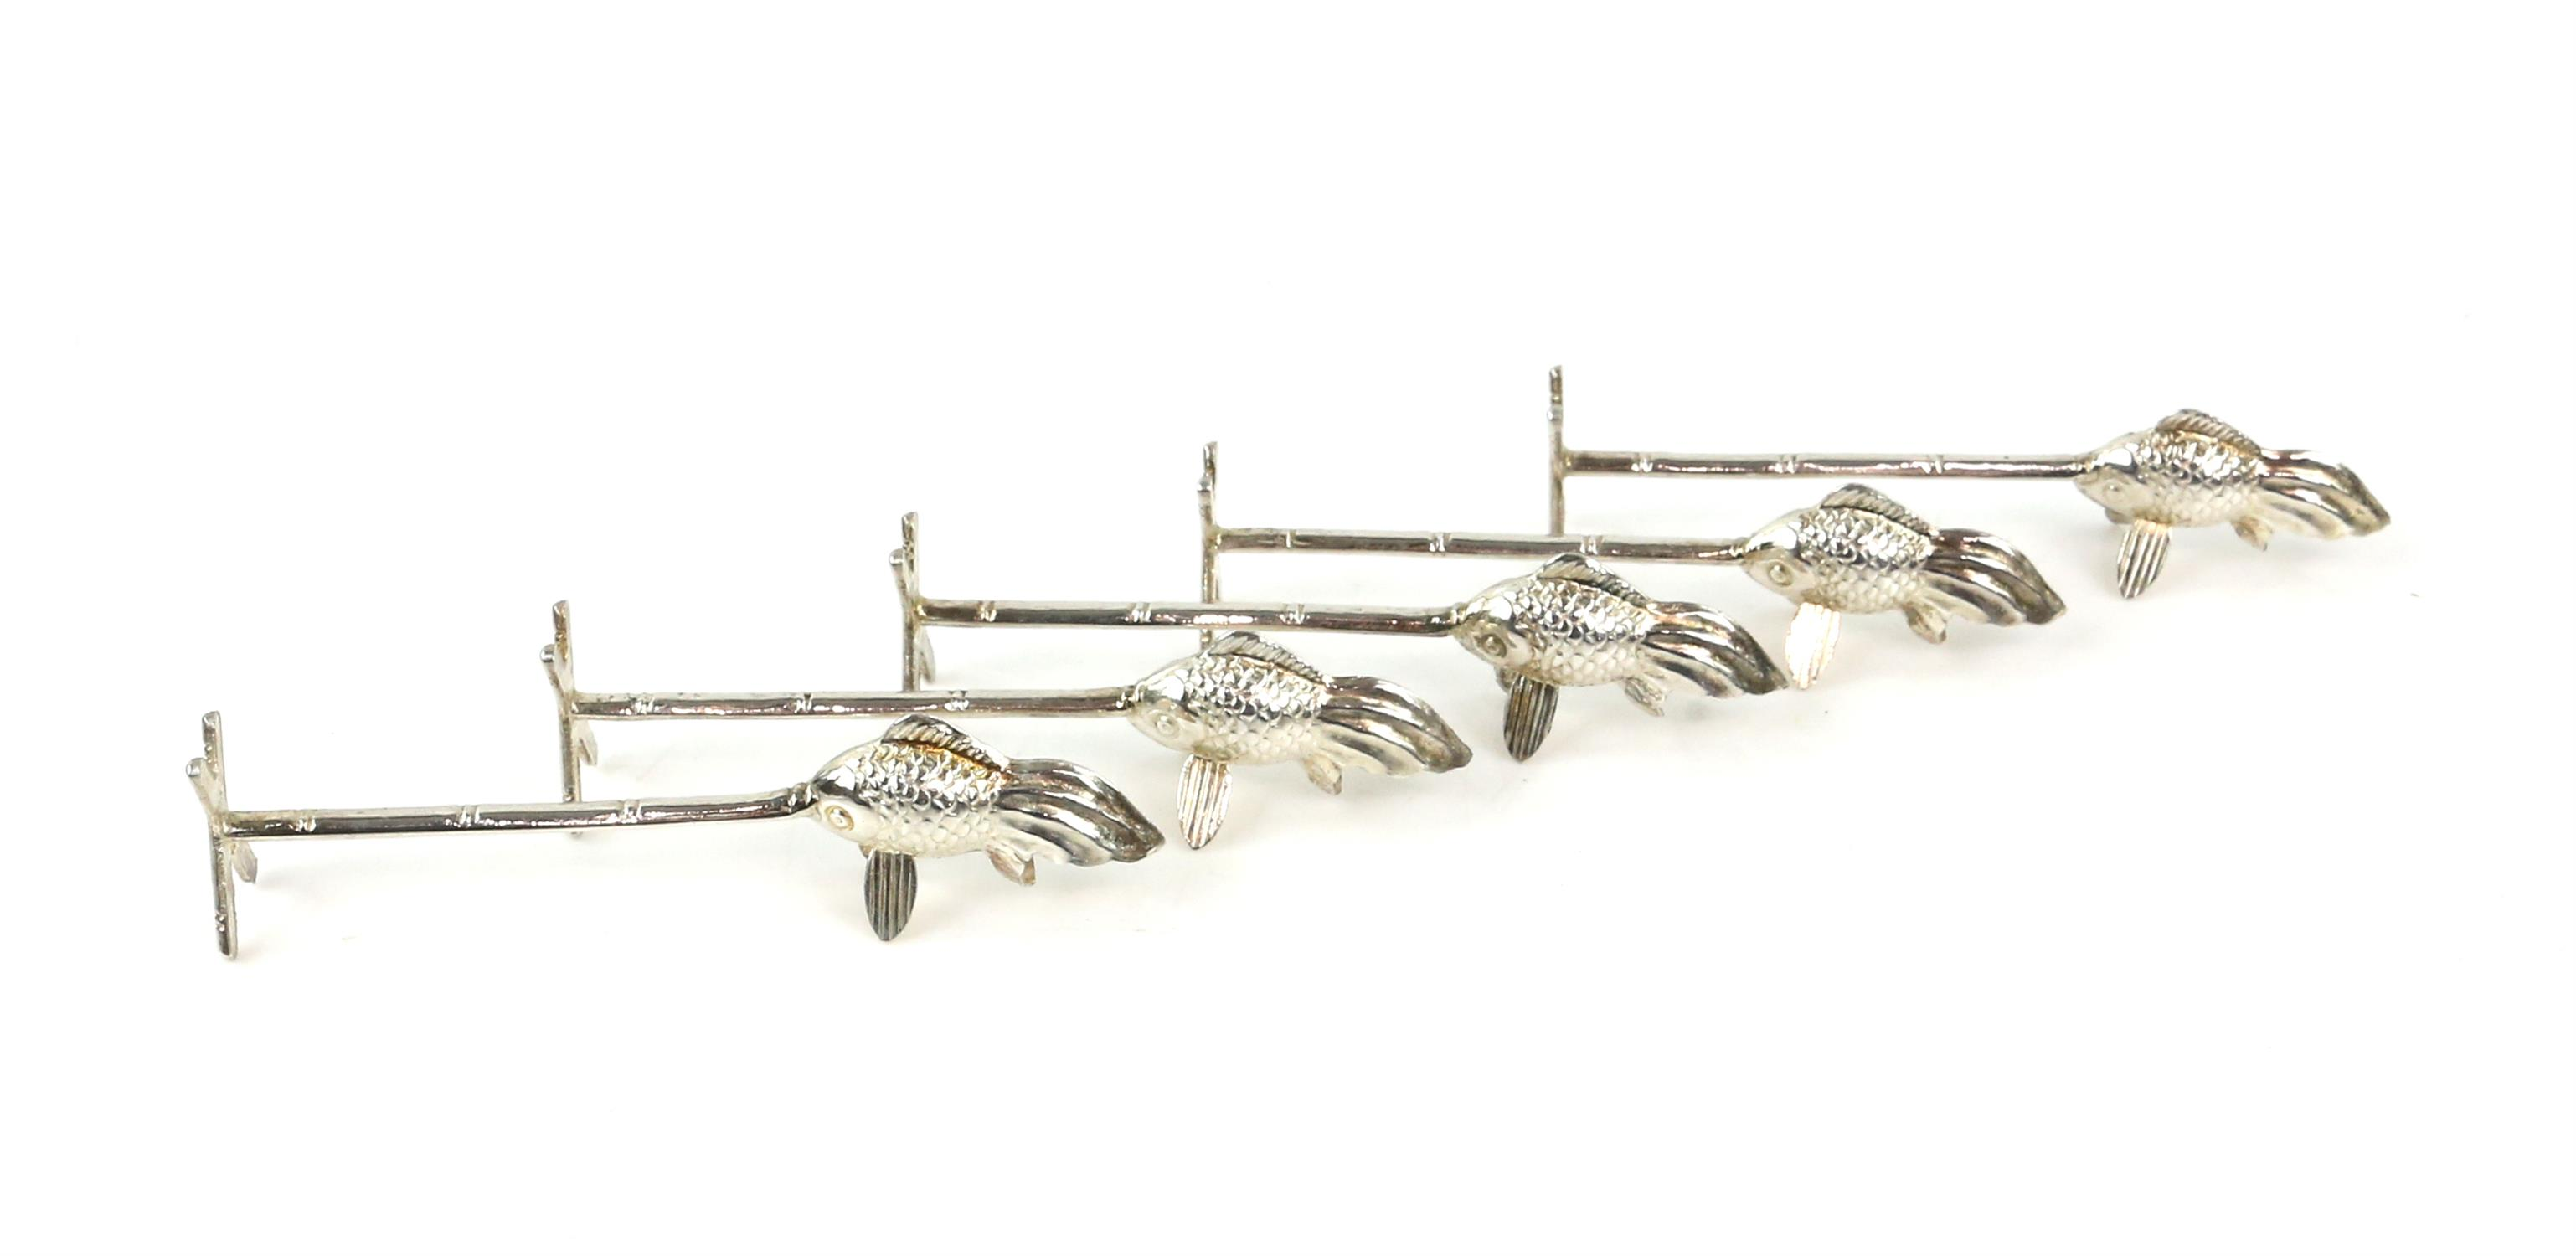 Japanese sterling silver cased set of novelty cutlery/chop stick rests, the bar and one end of